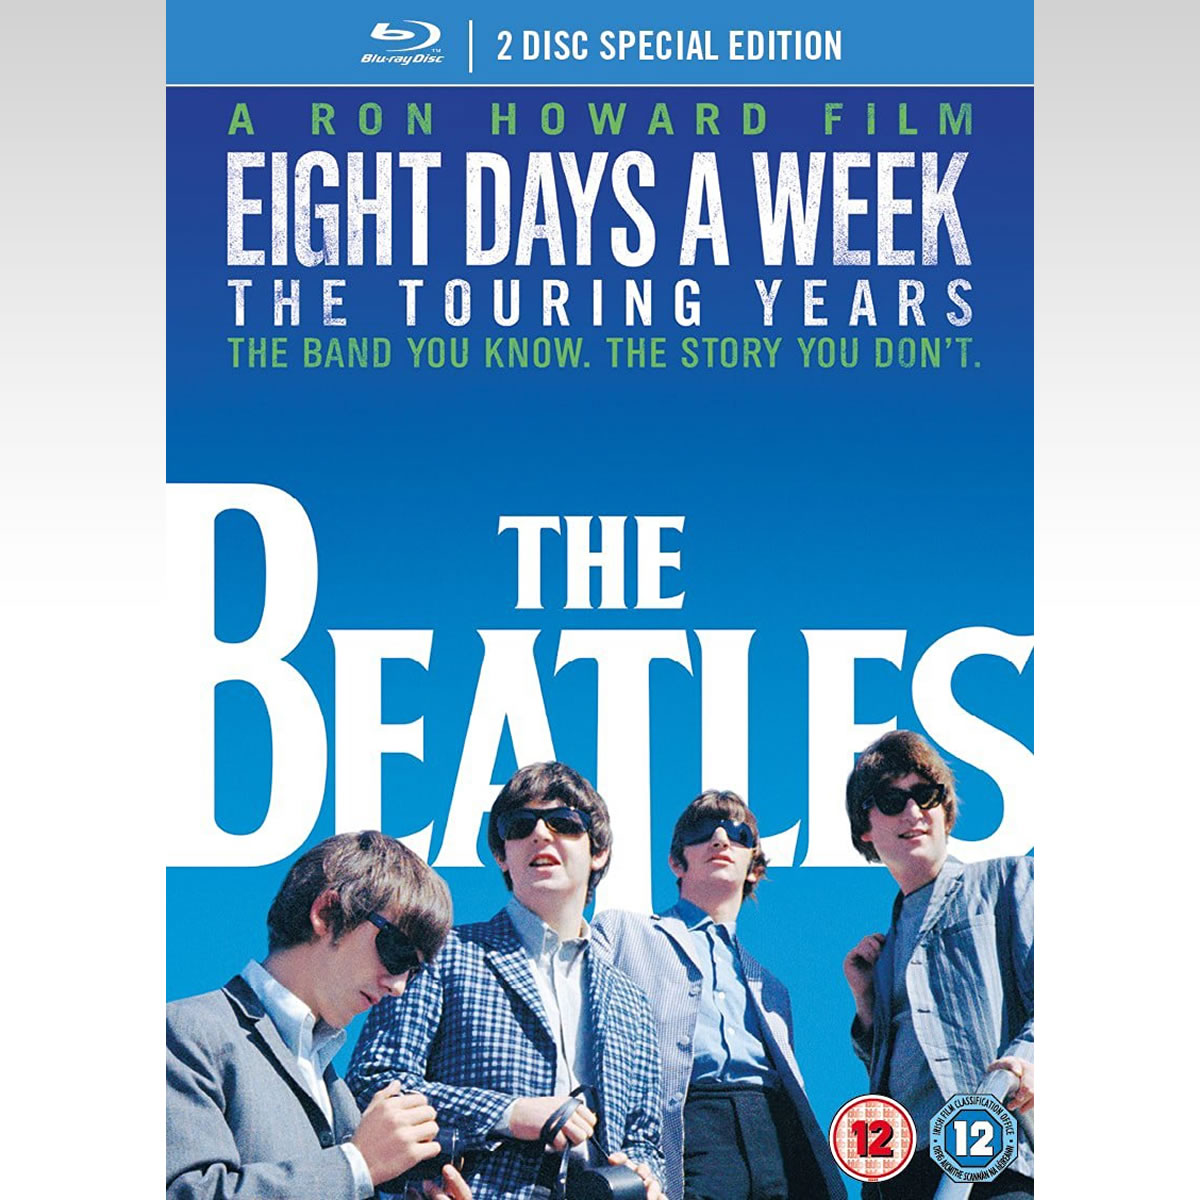 THE BEATLES: EIGHT DAYS A WEEK - THE TOURING YEARS - Deluxe Edition (BLU-RAY)